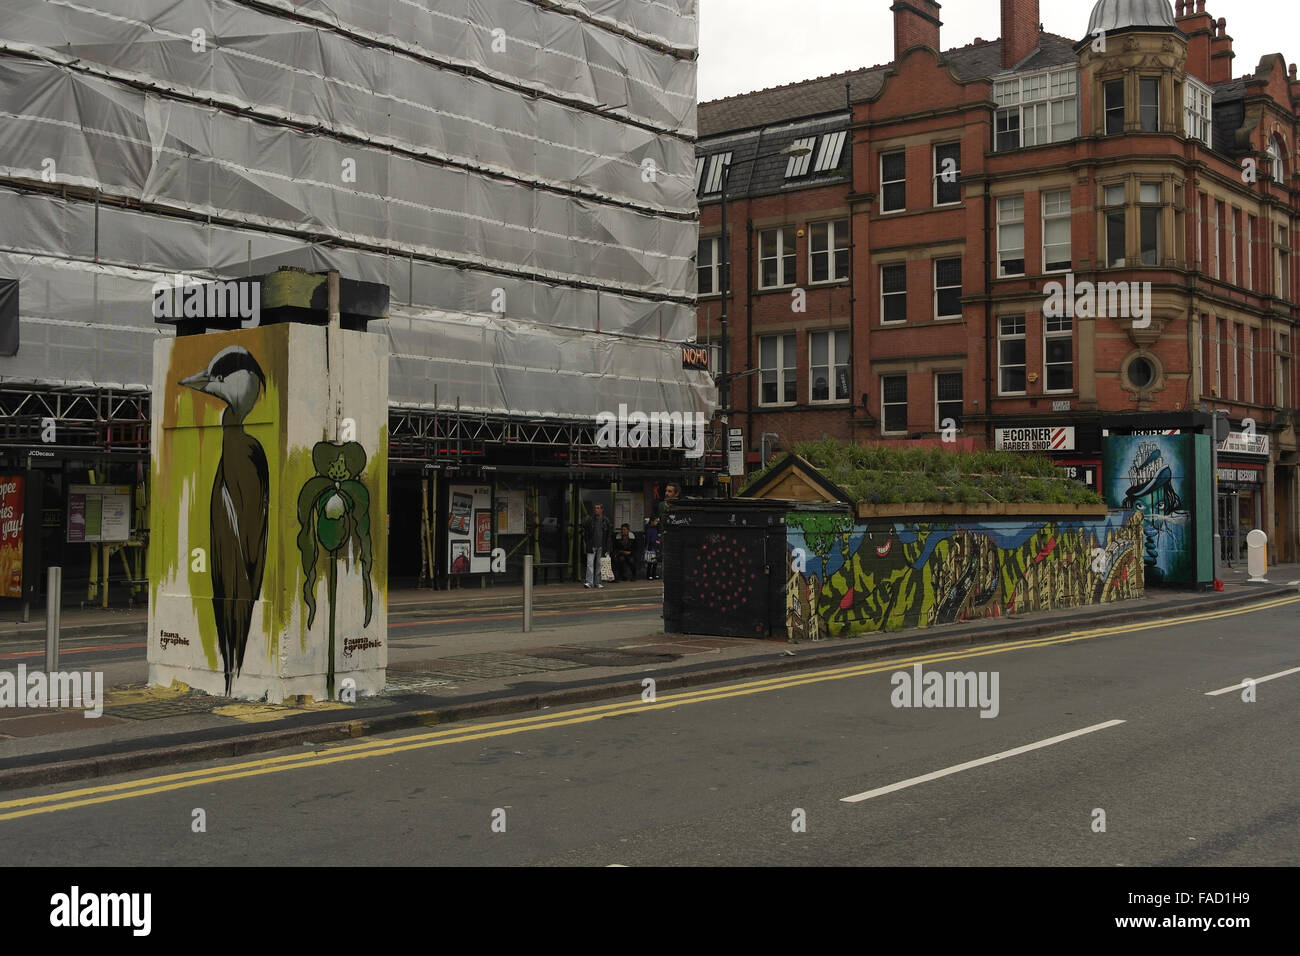 Oblique view Faunagraphic heron, Oliver Smith 'Mon 53' mural, SLM 'Wild Woman Island', Outhouse, Stevenson Square, Stock Photo